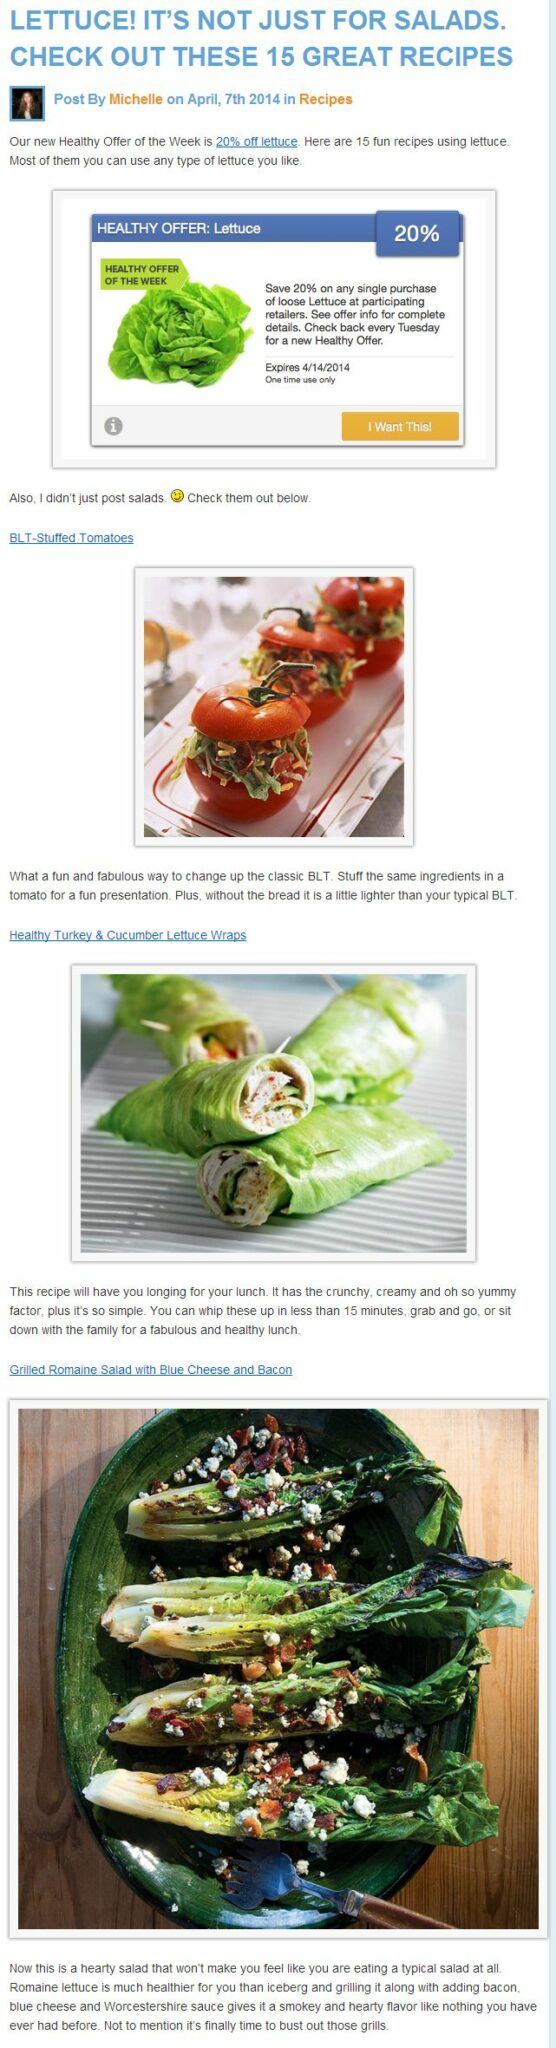 Deals  Discounts  healthy lettuce deal and recipes LET US SHOW GIVE YOU 20% OFF  LETTUCE plus  RECIPES   HEALTHY DEAL OF WEEK